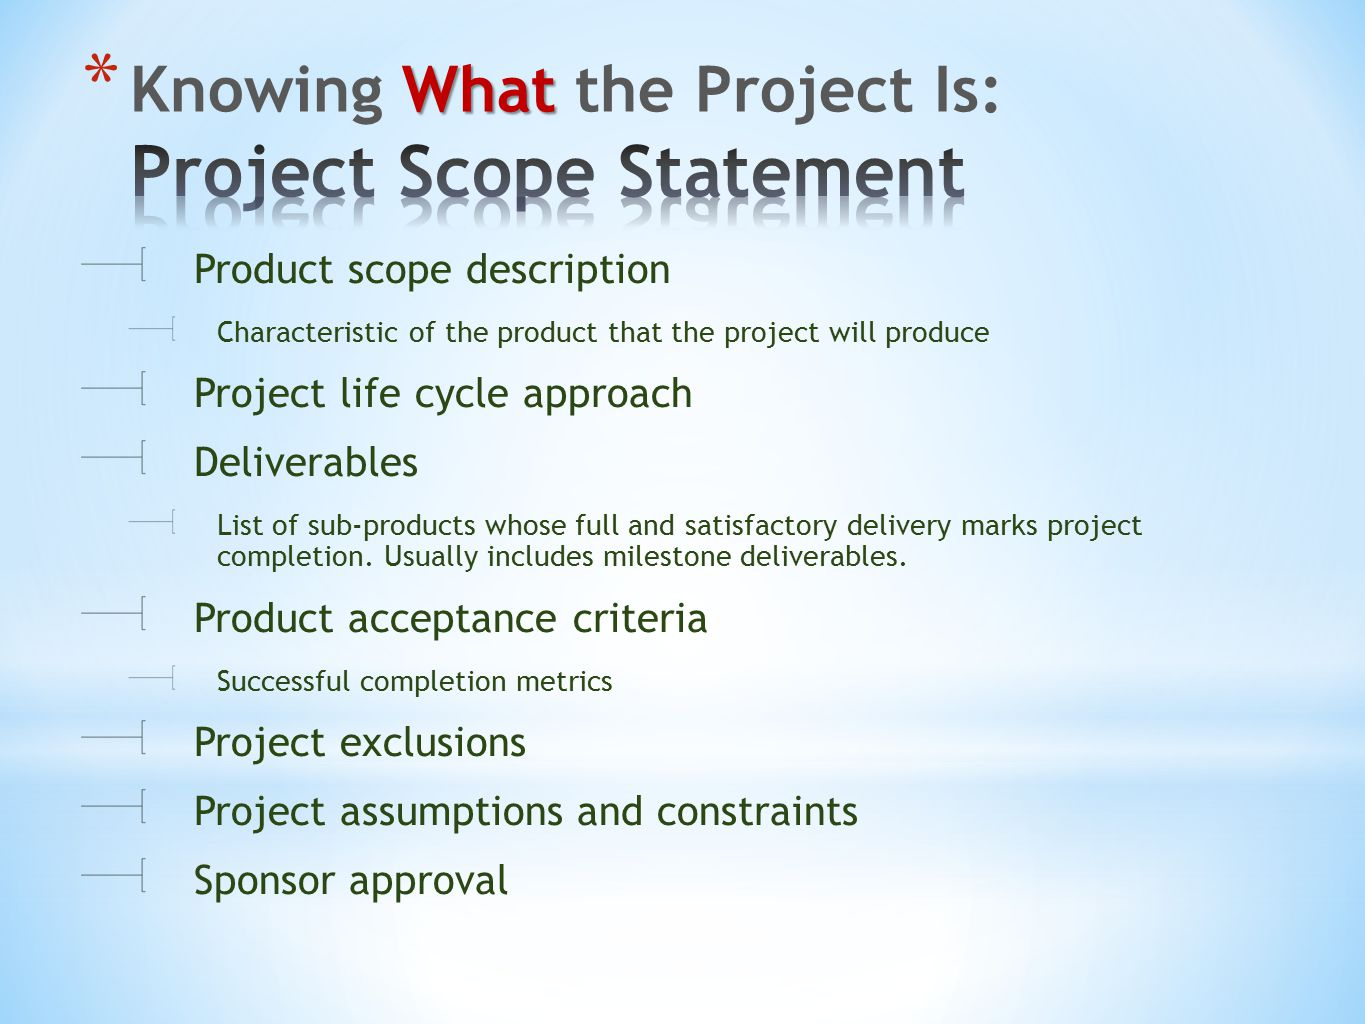 Product scope description Characteristic of the product that the project will produce Project life cycle approach Deliverables List of sub-products whose full and satisfactory delivery marks project completion.